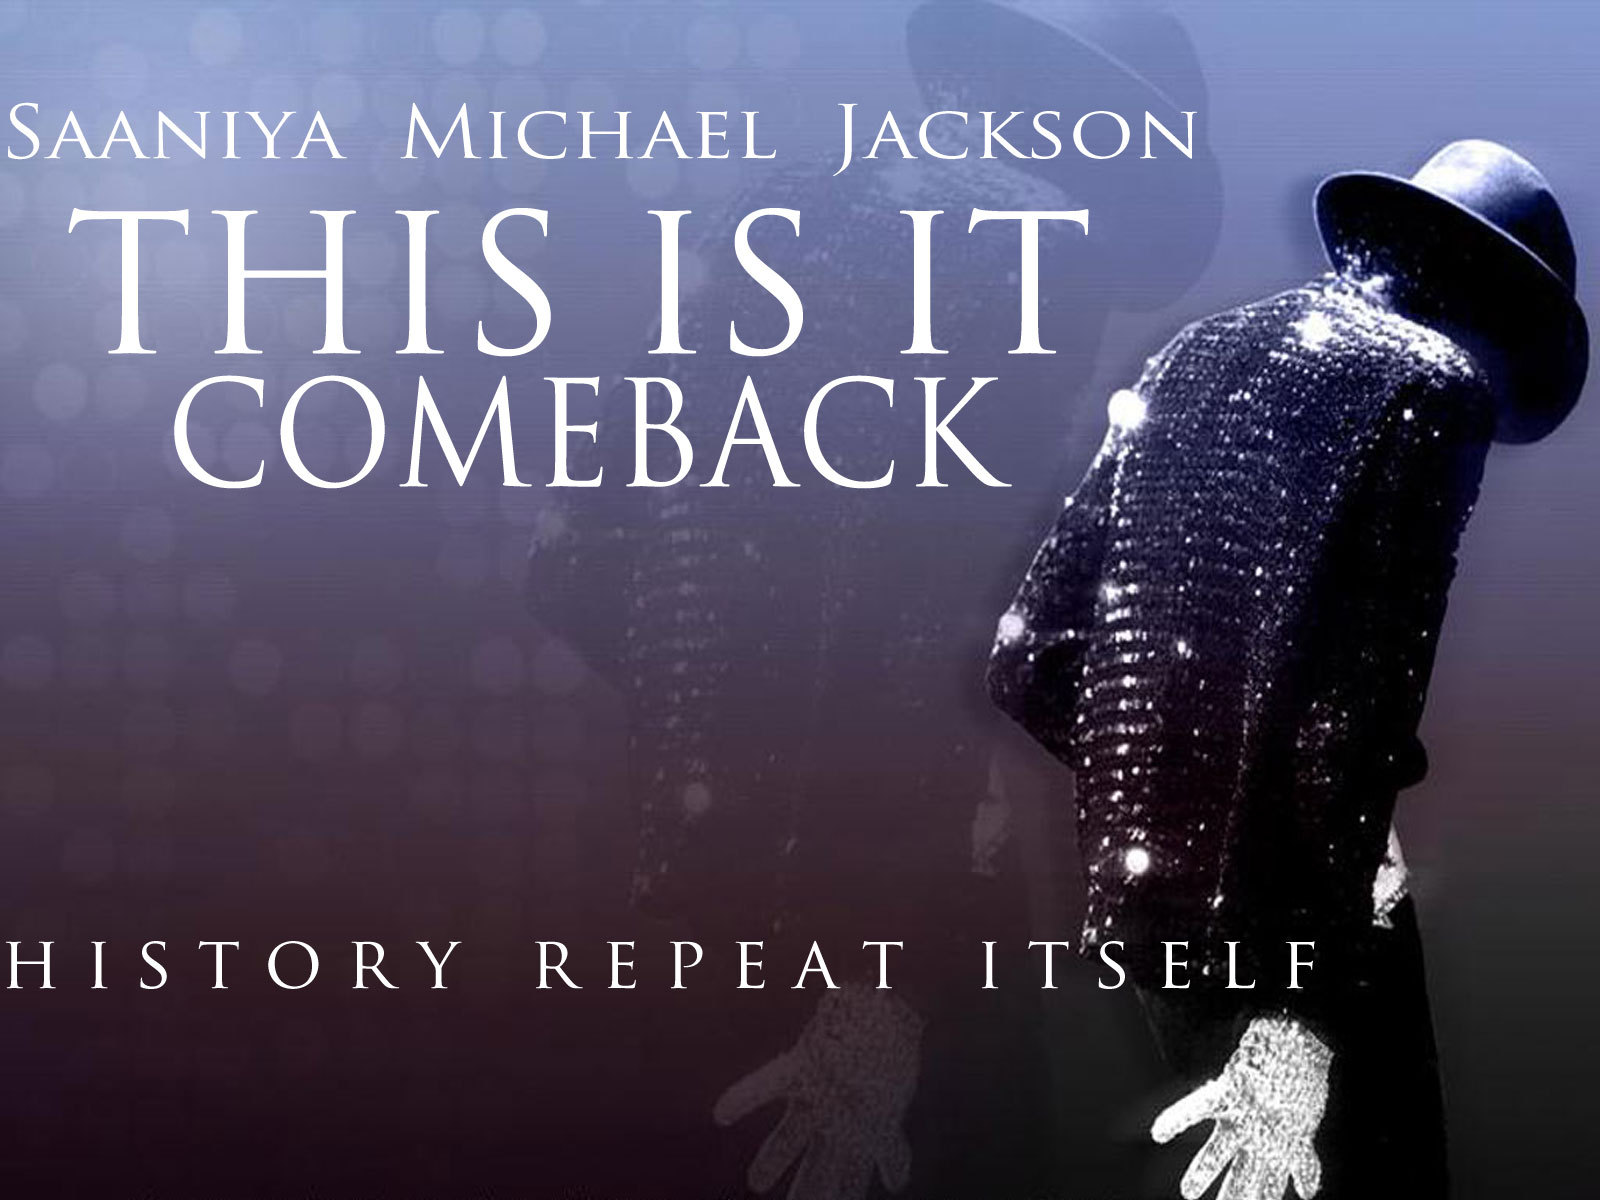 saaniya michael jackson this is it comeback wallpapers